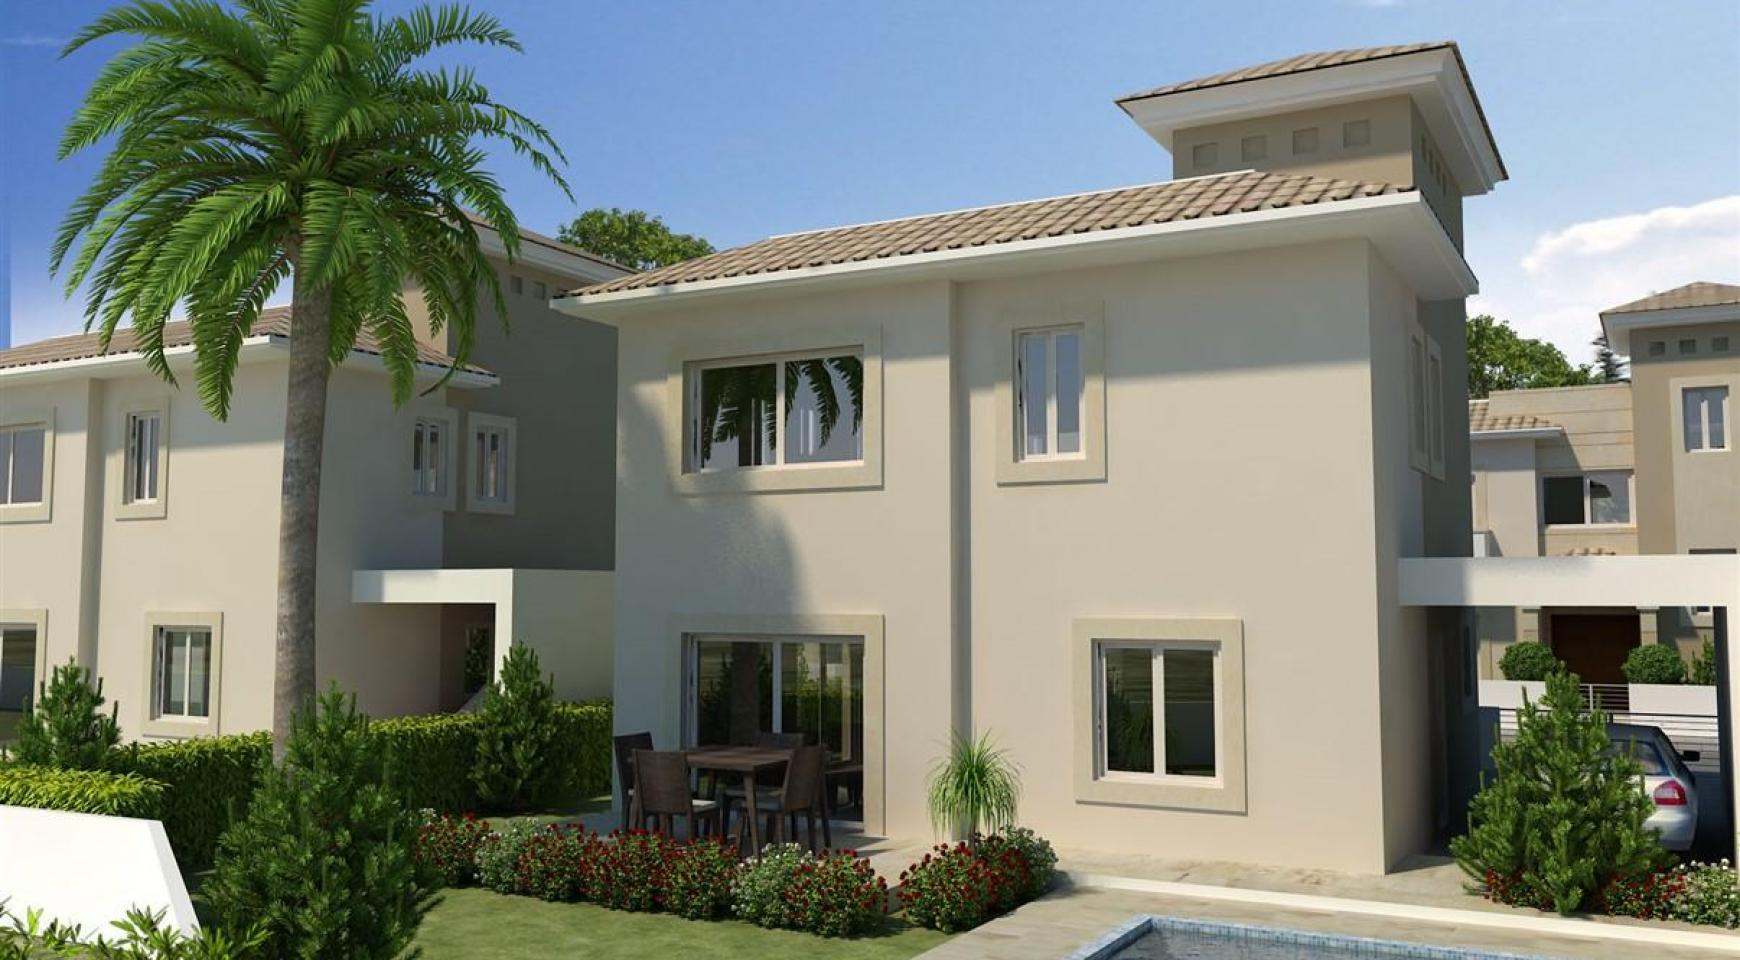 3 Bedroom Villa in New Project in Paphos - 16